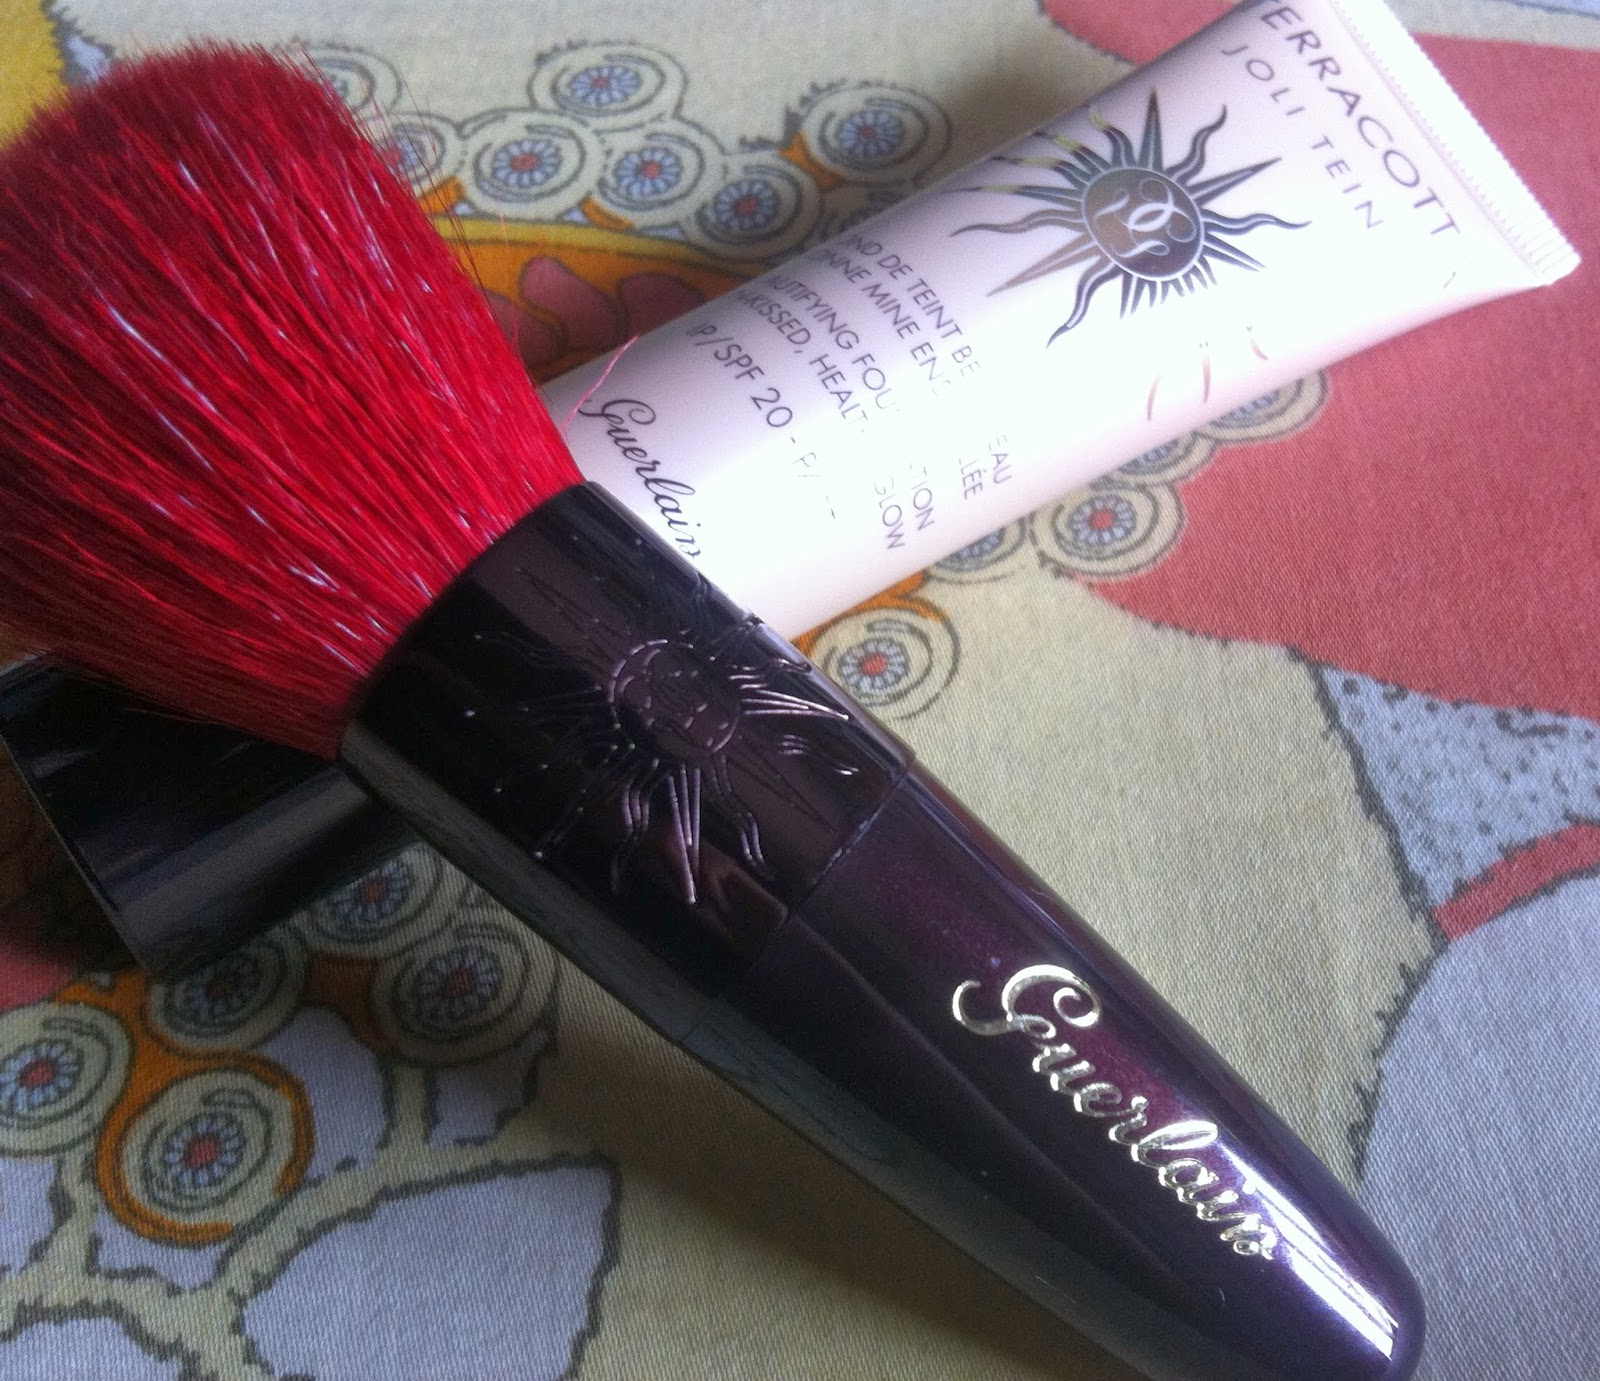 Guerlain Terracotta 2014 Joli Teint make up fondotinta